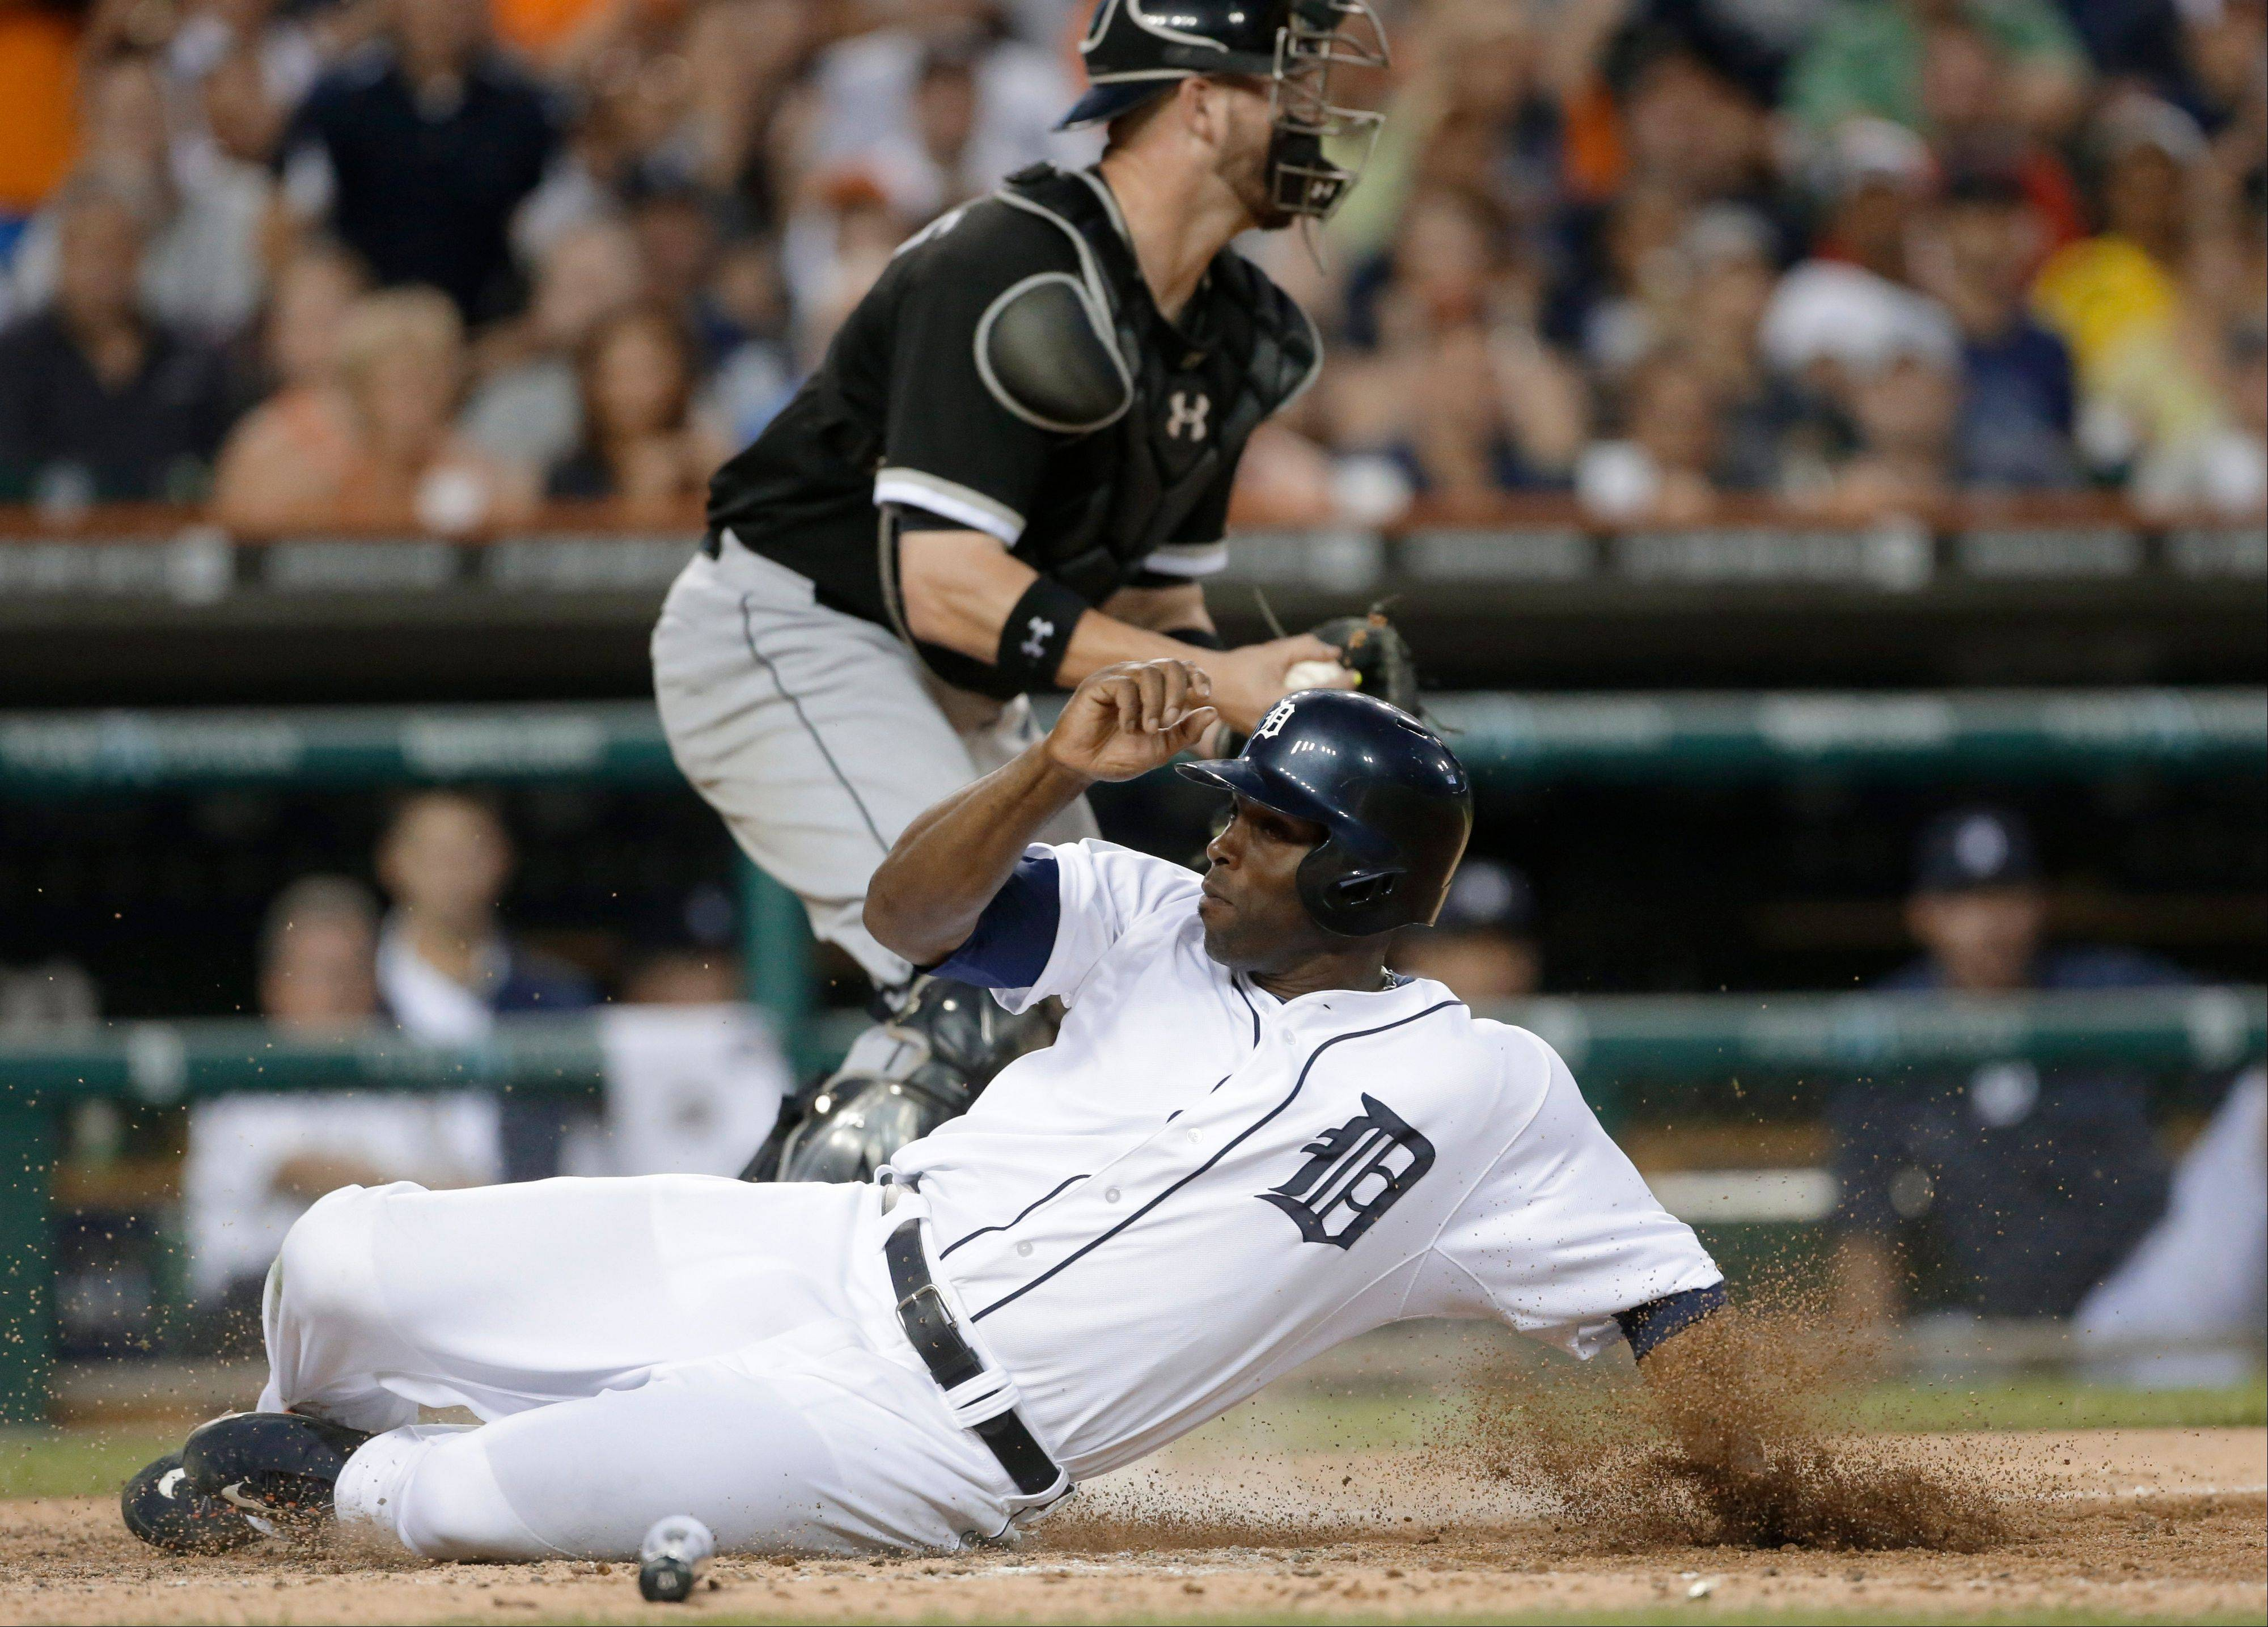 Detroit Tigers' Torii Hunter beats the throw to Chicago White Sox catcher Tyler Flowers from left fielder Dayan Viciedo and scores from second on a single by Prince Fielder during the sixth inning of a baseball game in Detroit, Wednesday, July 10, 2013.